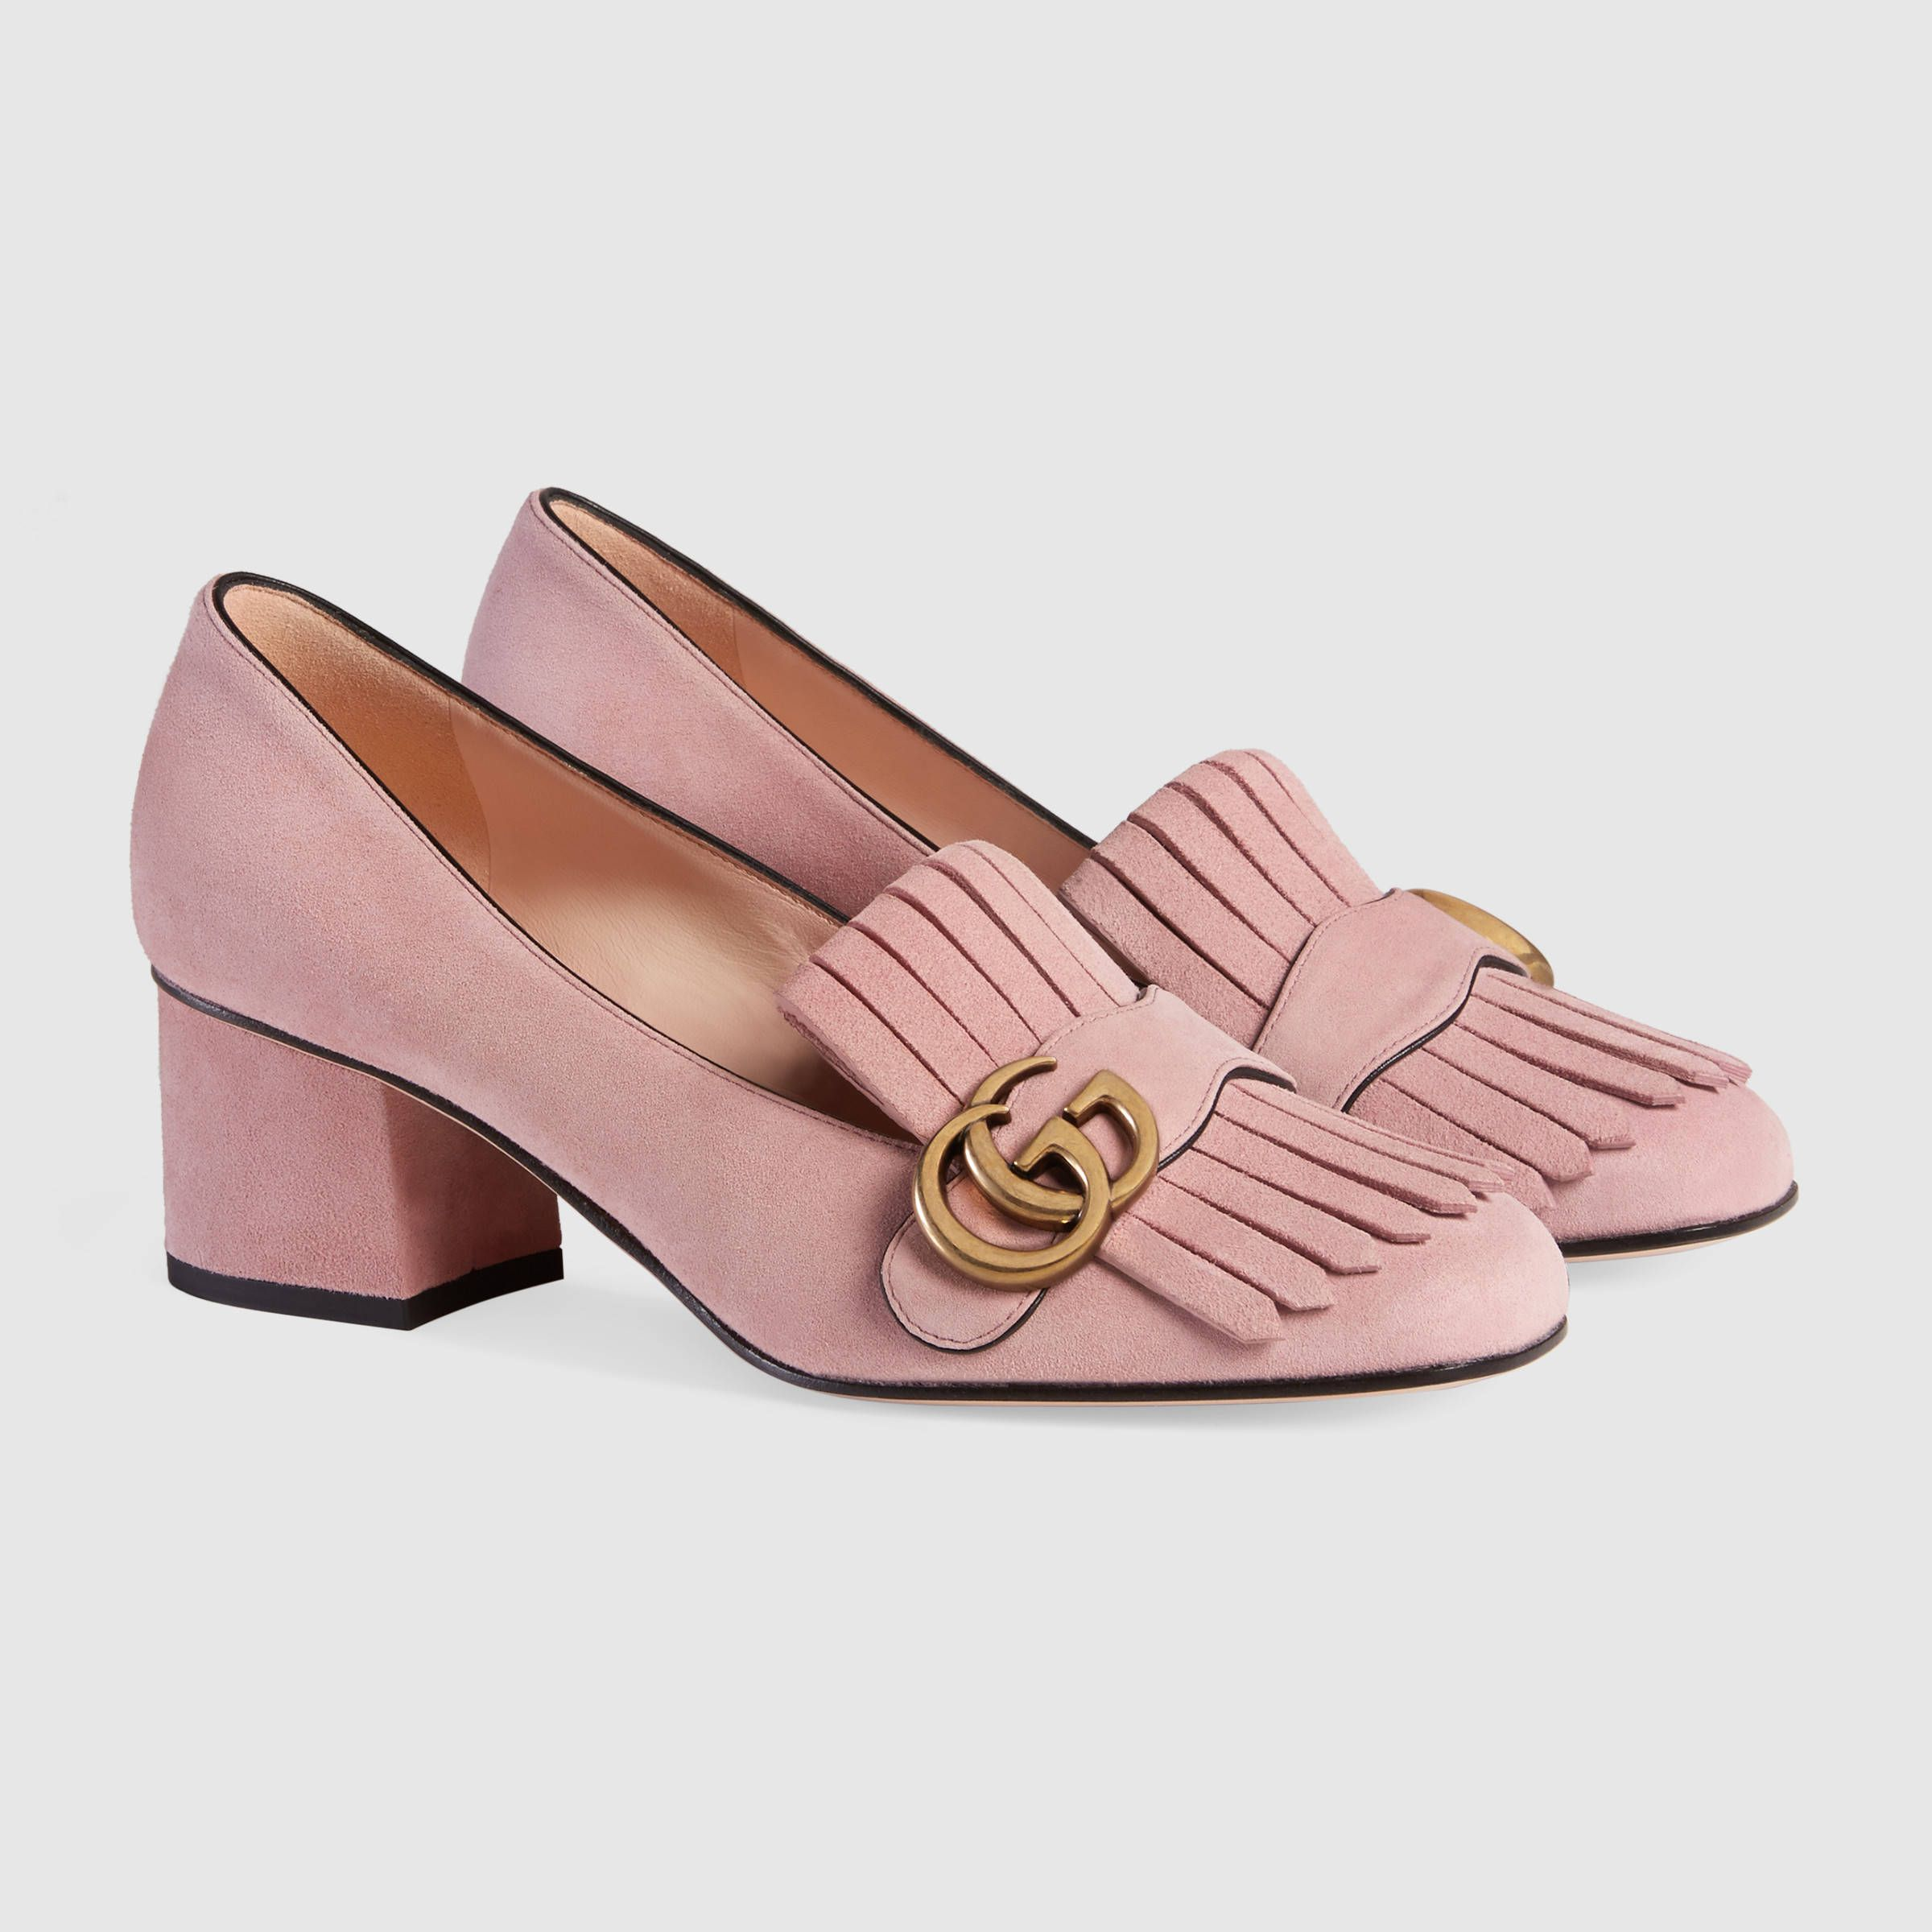 d67e76132b4 Gucci low heel light pink suede size 40.5 | Foot Candy | Shoes ...